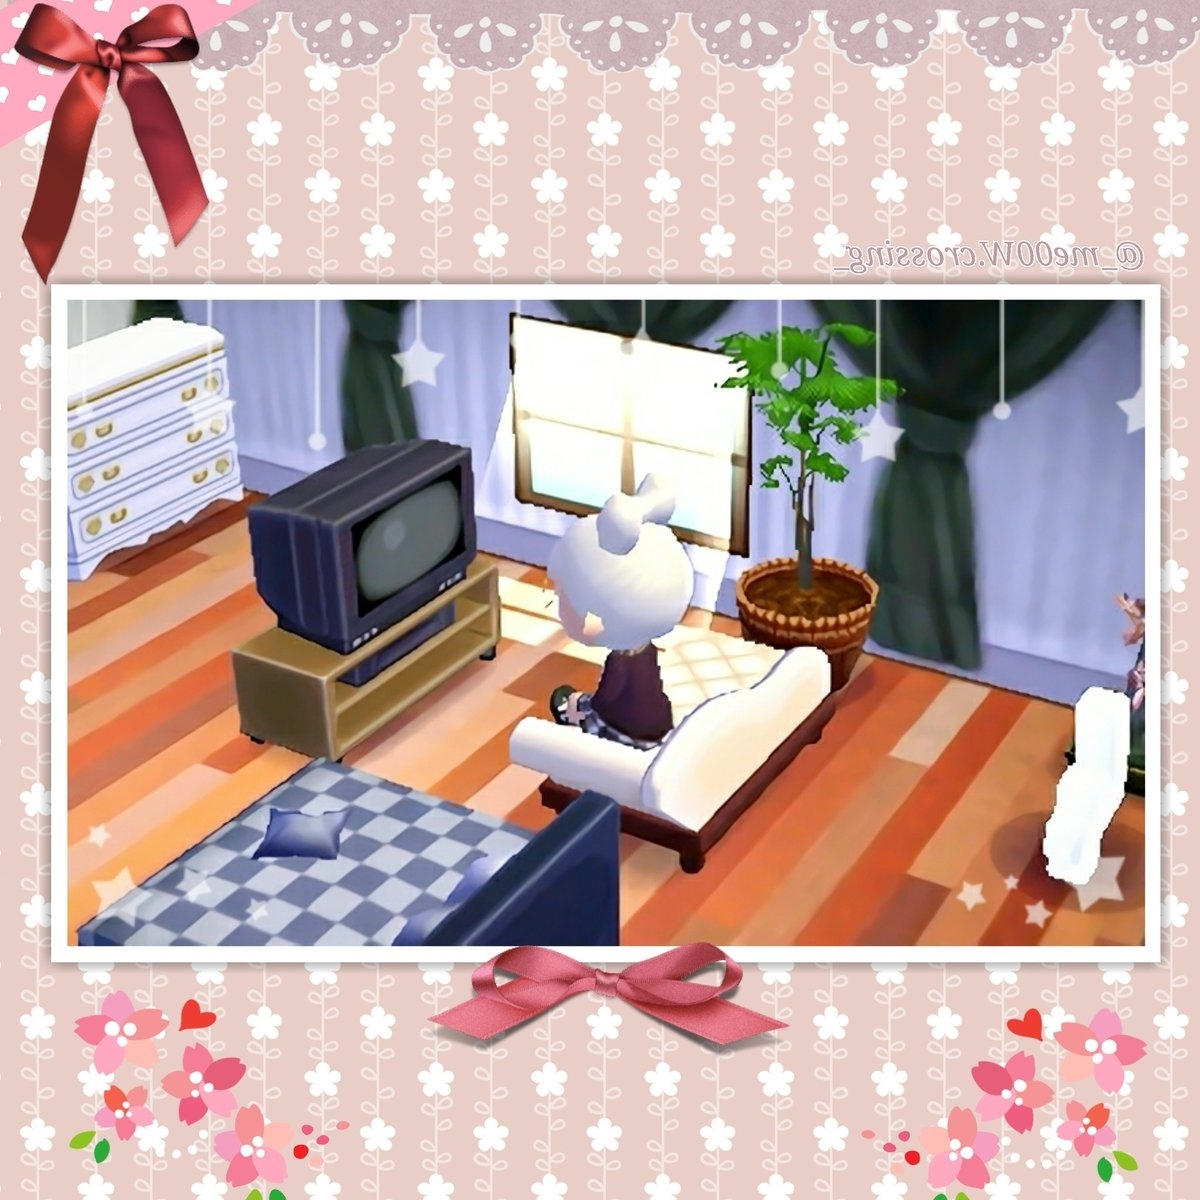 """Me00W On Twitter: """"My Living Room 💟 #Animalcrossing #Acnl 20+ Acnl Living Room Inspirations"""